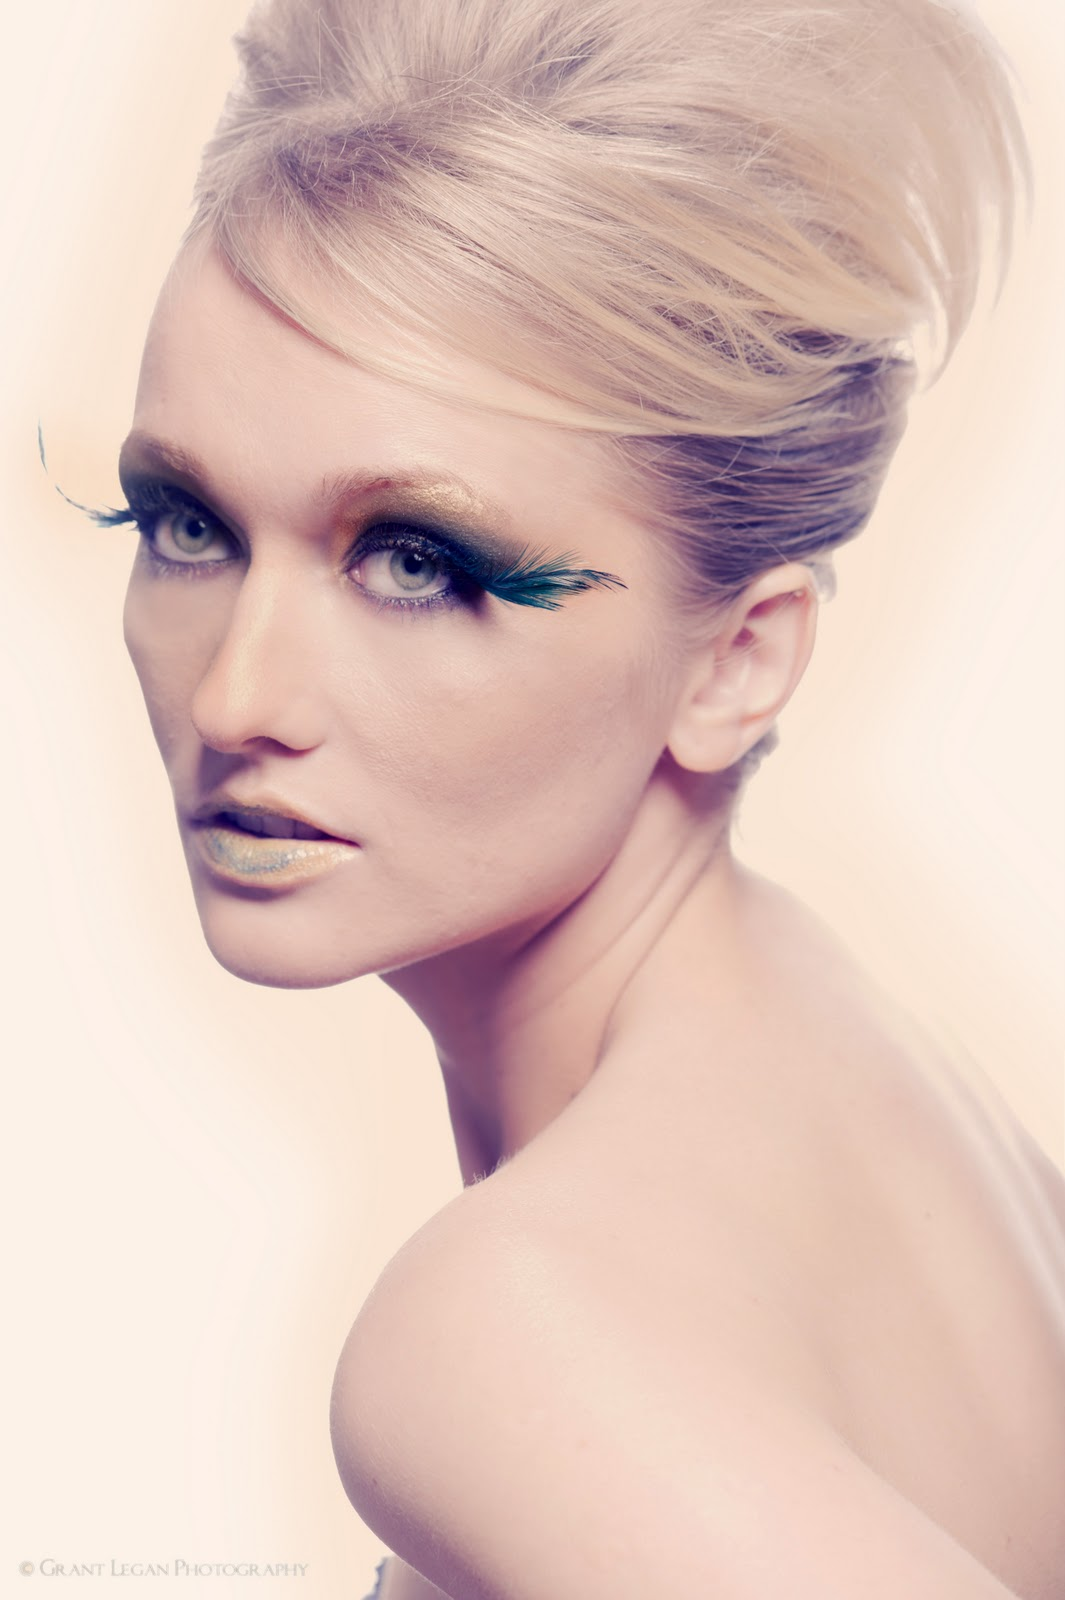 Grant Legan Photography: High Fashion Makeup